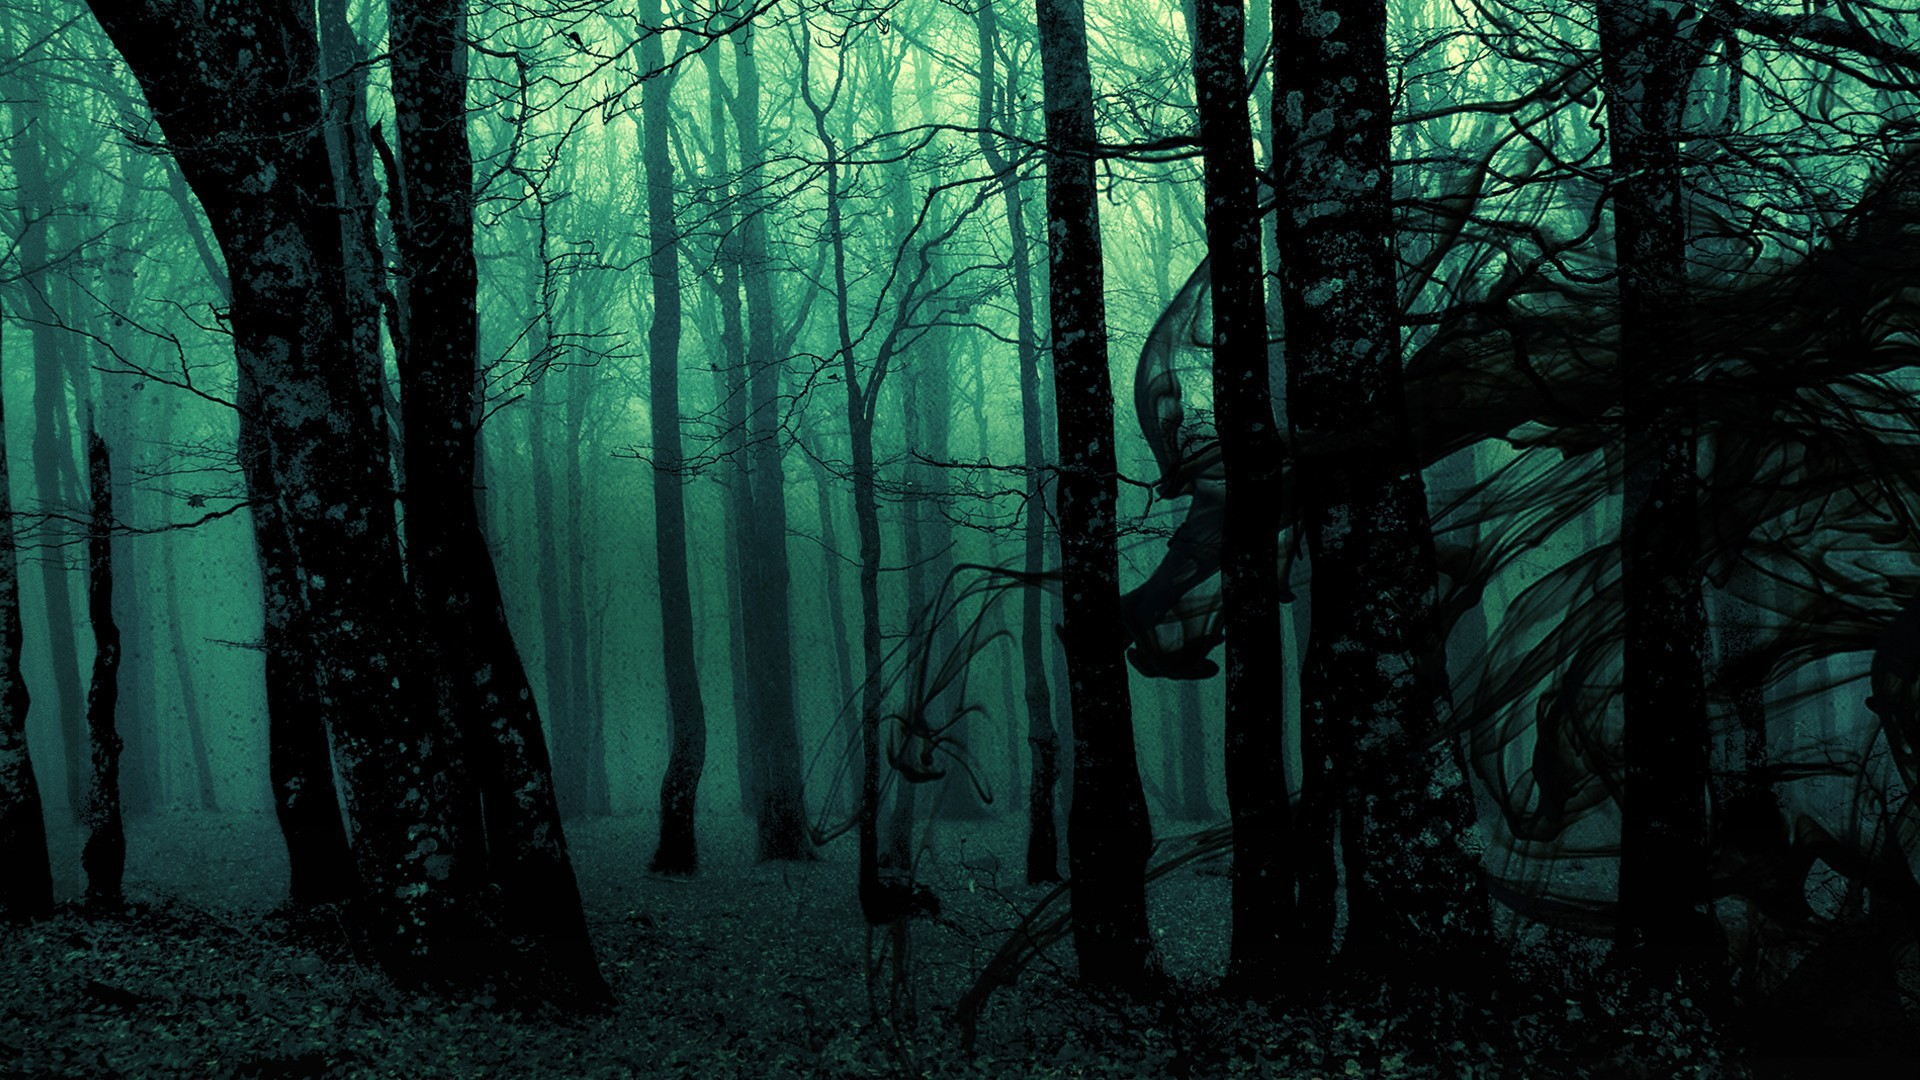 Dark ghost gothic wood trees fantasy evil horror wallpaper 1920x1080 1920x1080